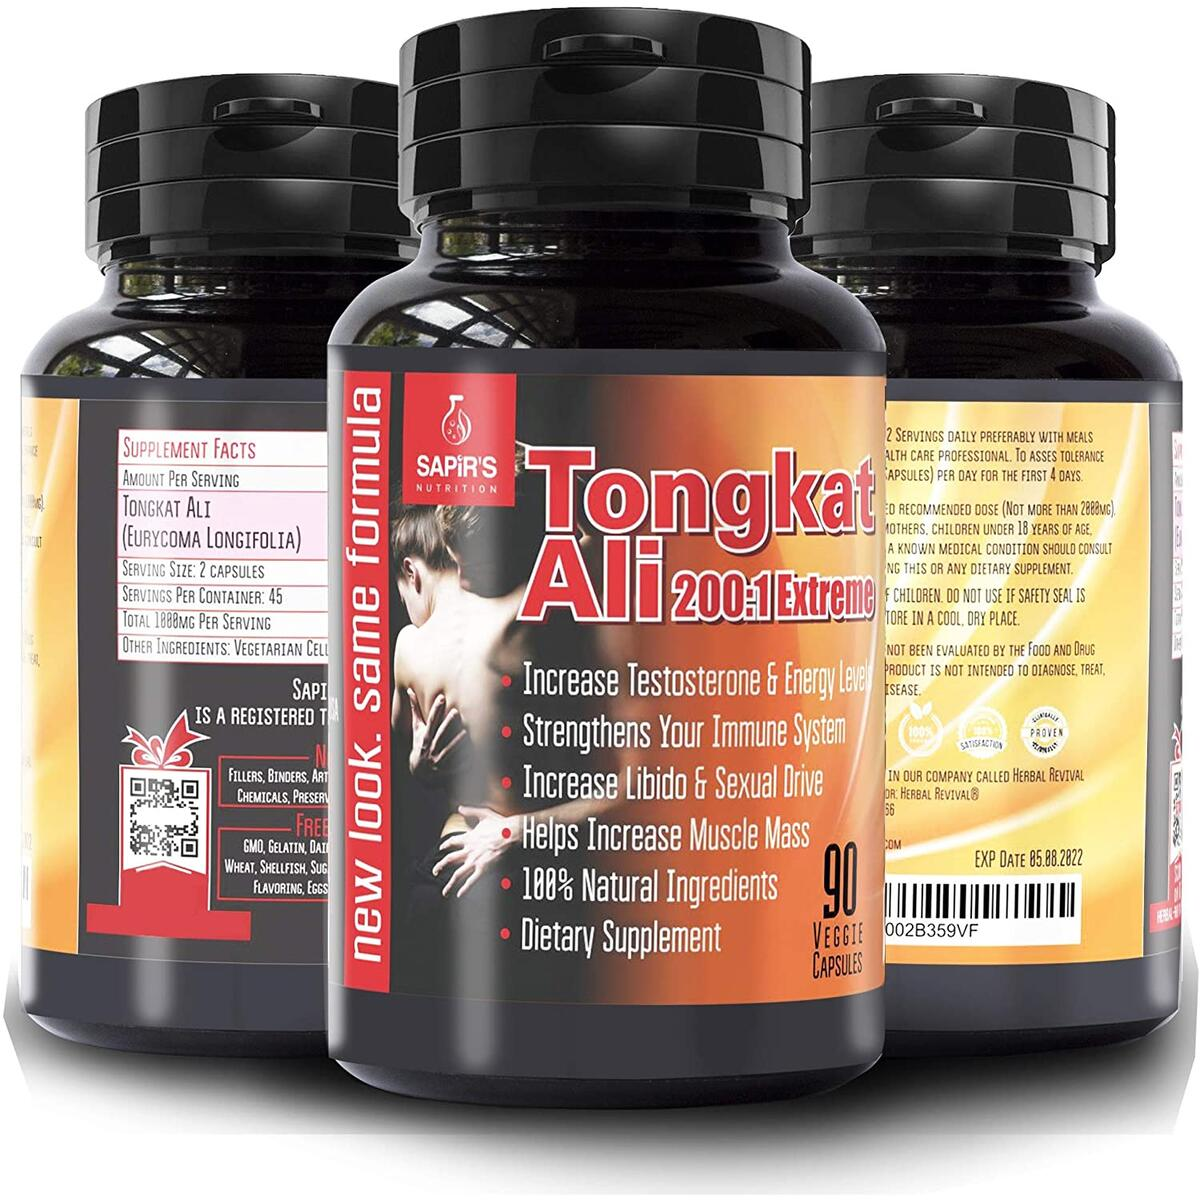 Longjack Tongkat Ali for Men – Natural Testosterone Booster for Men Muscle Growth, 200:1 3000mg 90 Eurycoma Longifolia Capsules, Male Libido Booster for Men Stamina, Increases Energy and Blood Flow